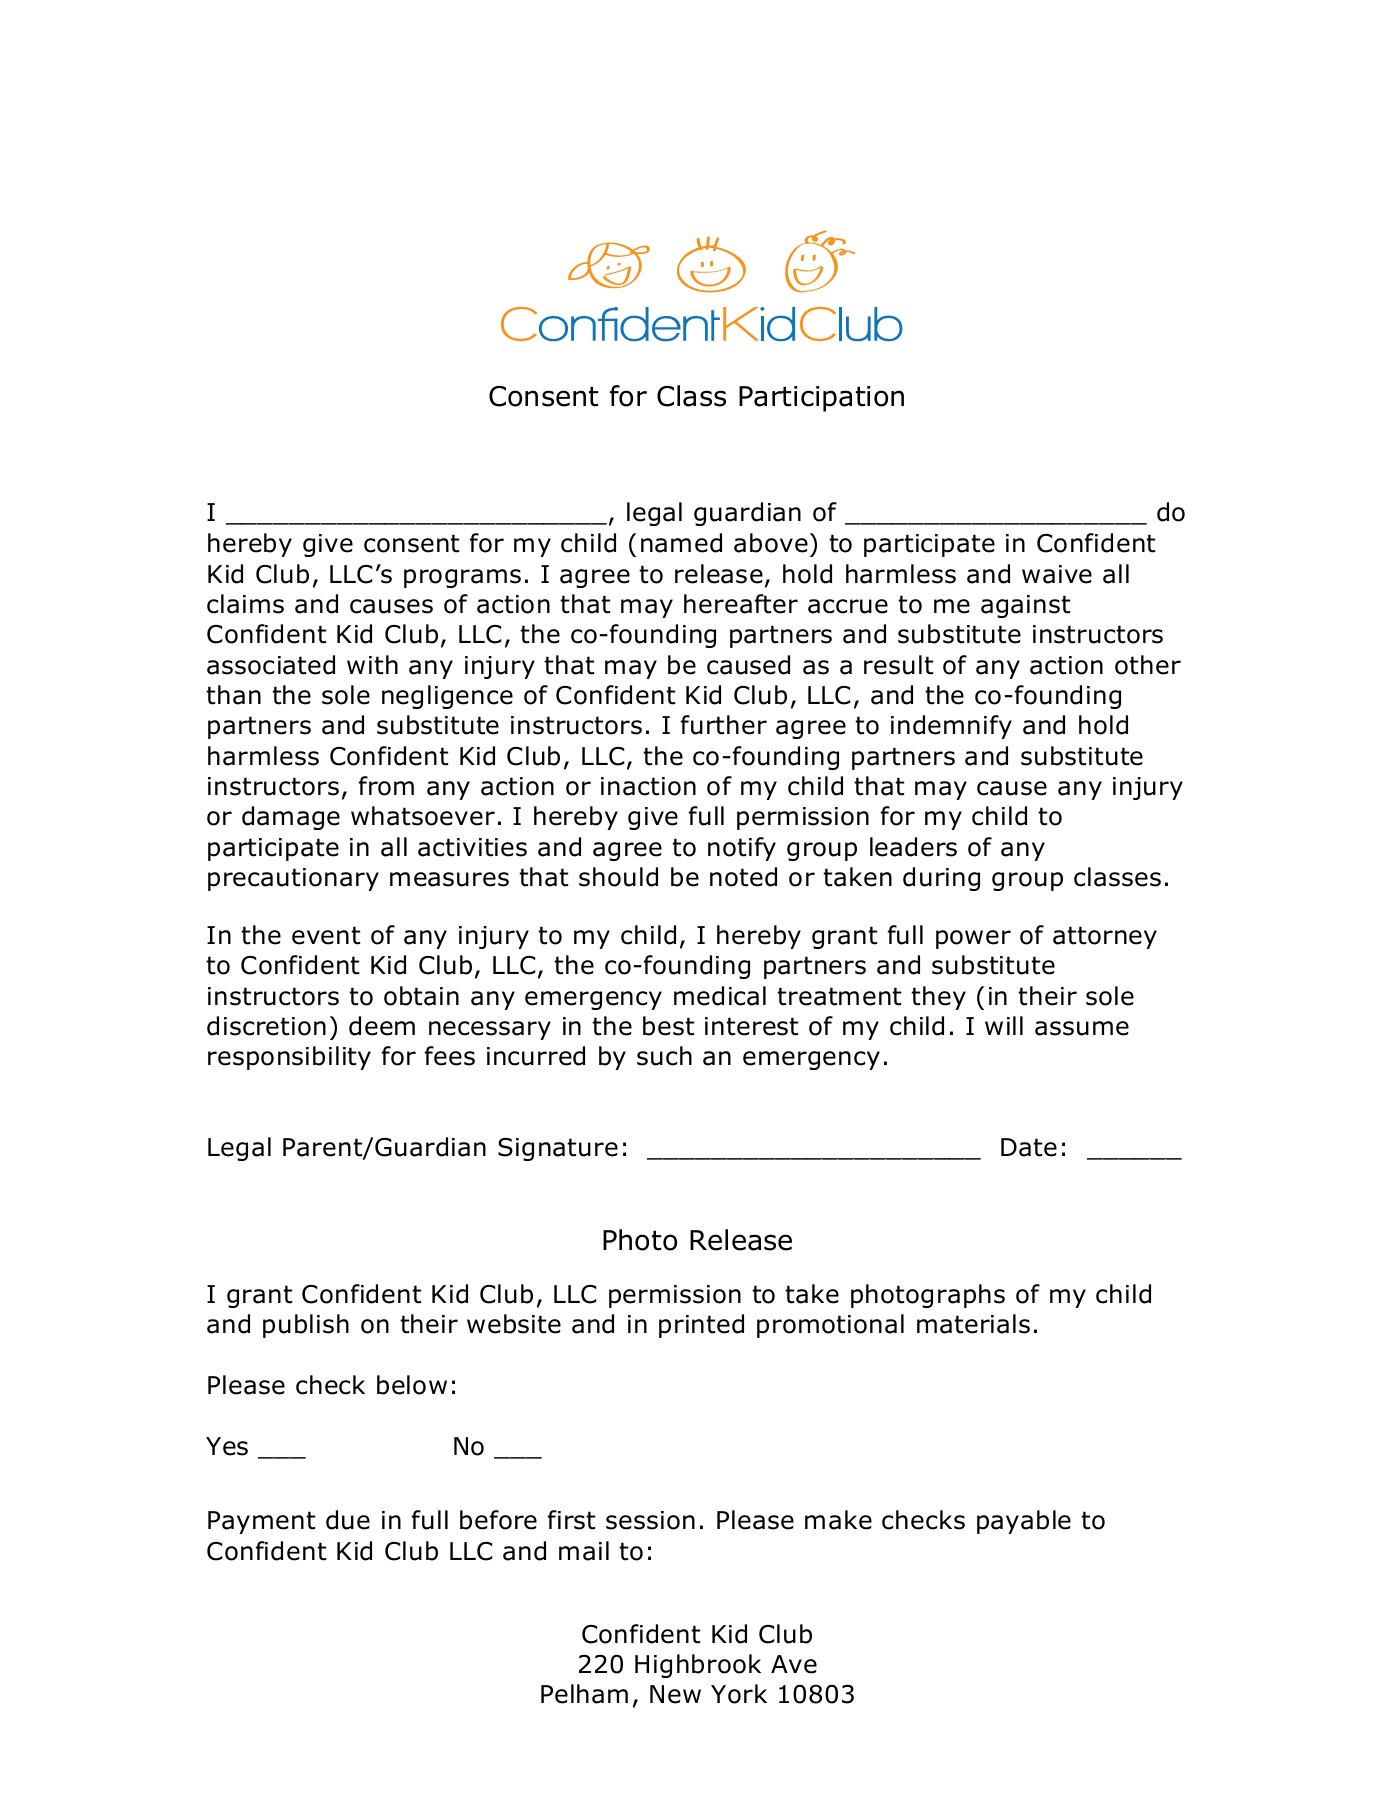 CKC Updated Registration Form 2014 - Confident Kid Club